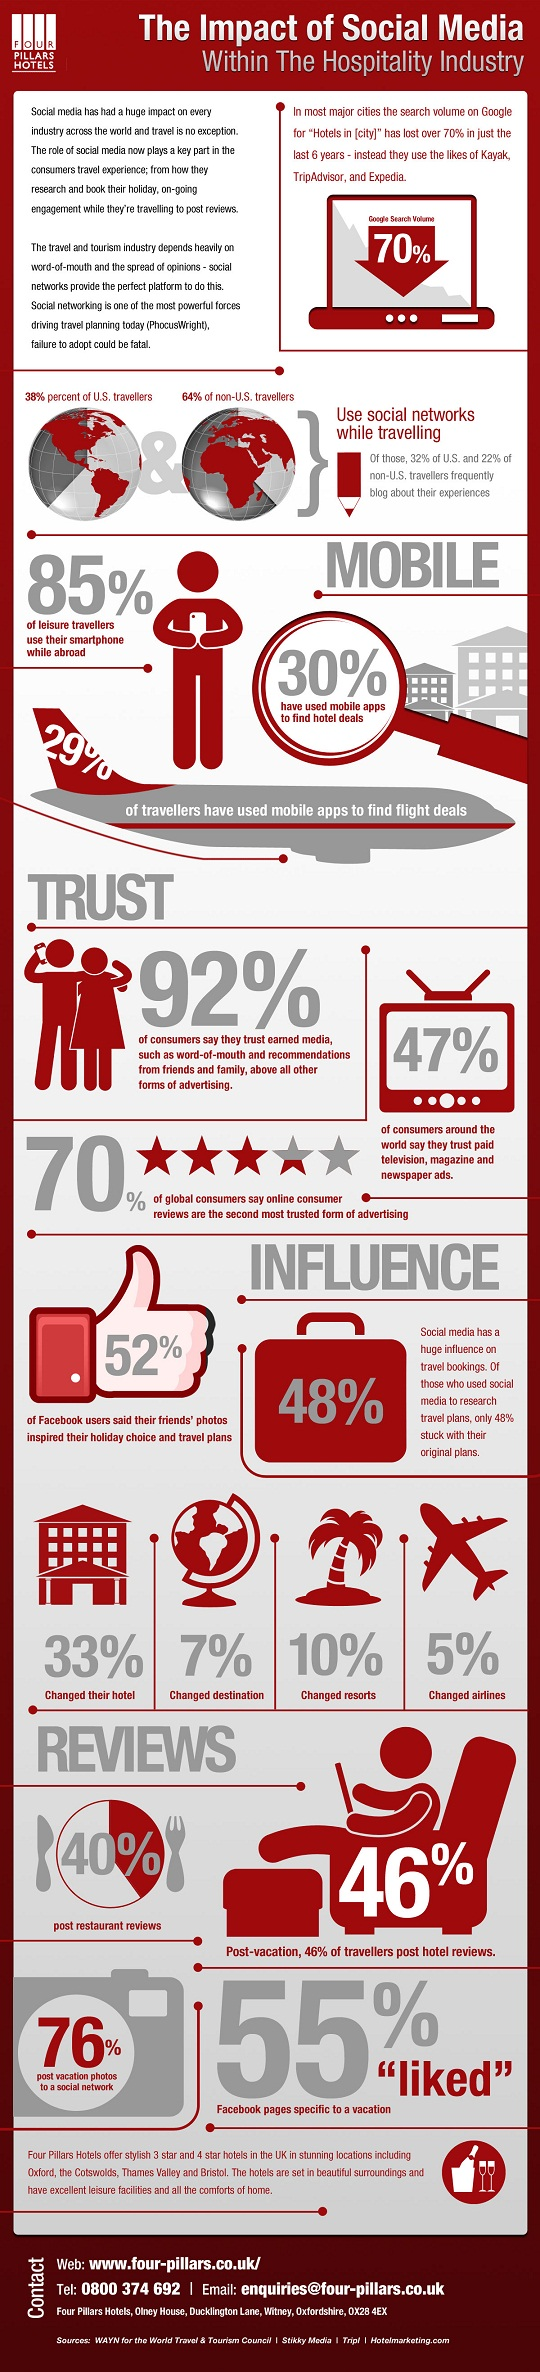 The Impact Of Social Media Within The Hospitality Industry